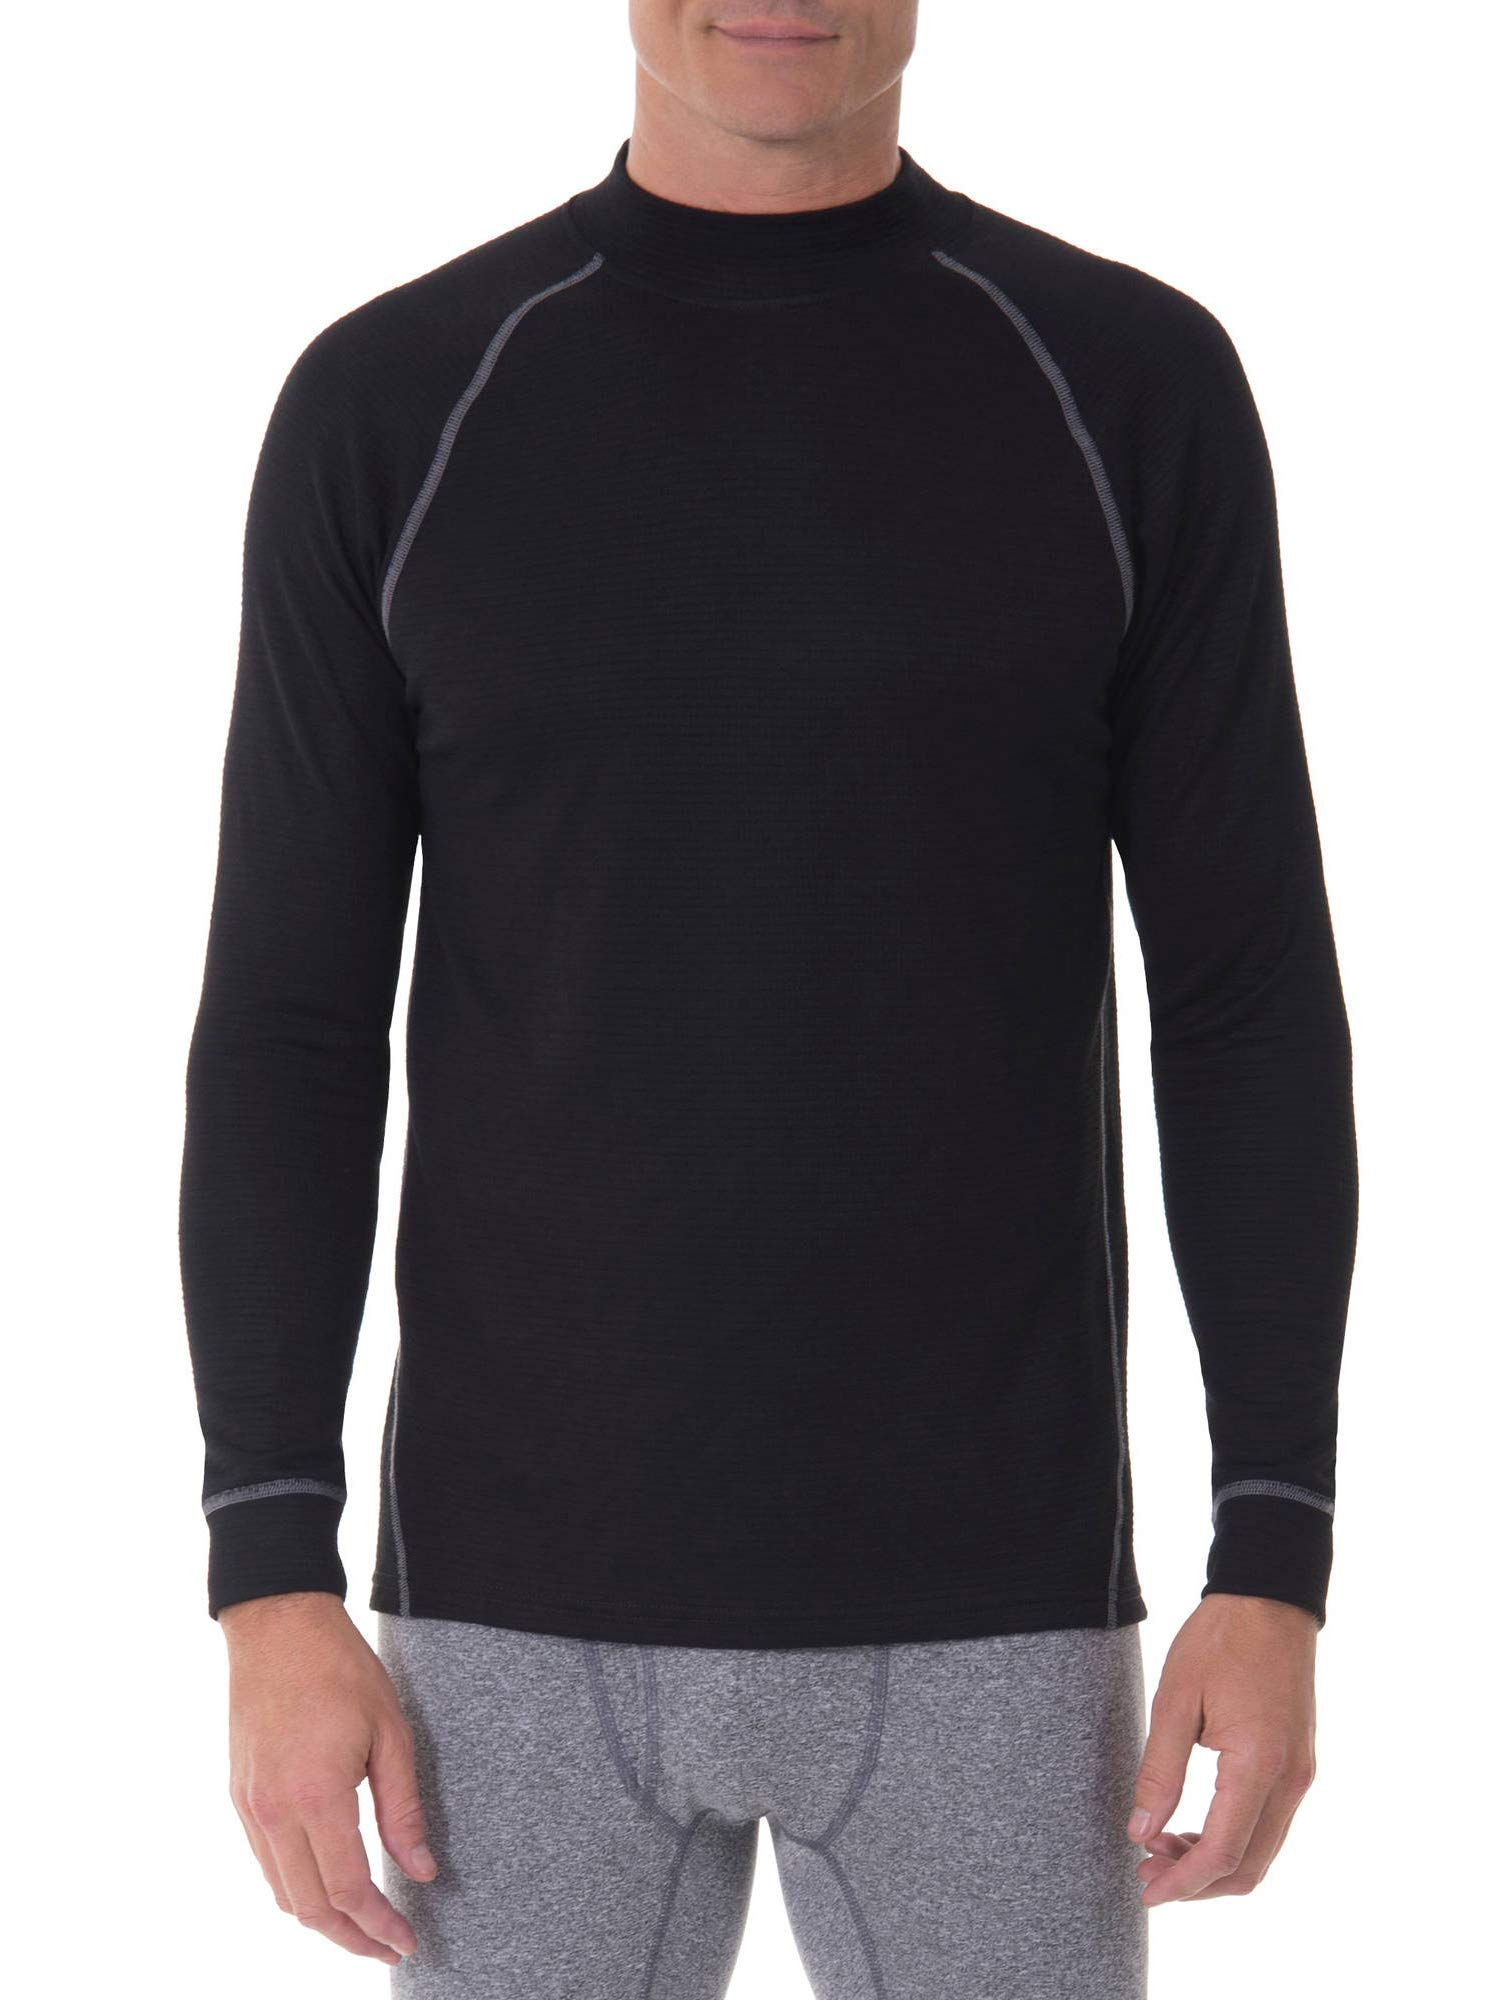 Russell Performance Tech Grid Baselayer Thermal Crew Top - Black (XL (Chest 46-48)) by Russell Athletic